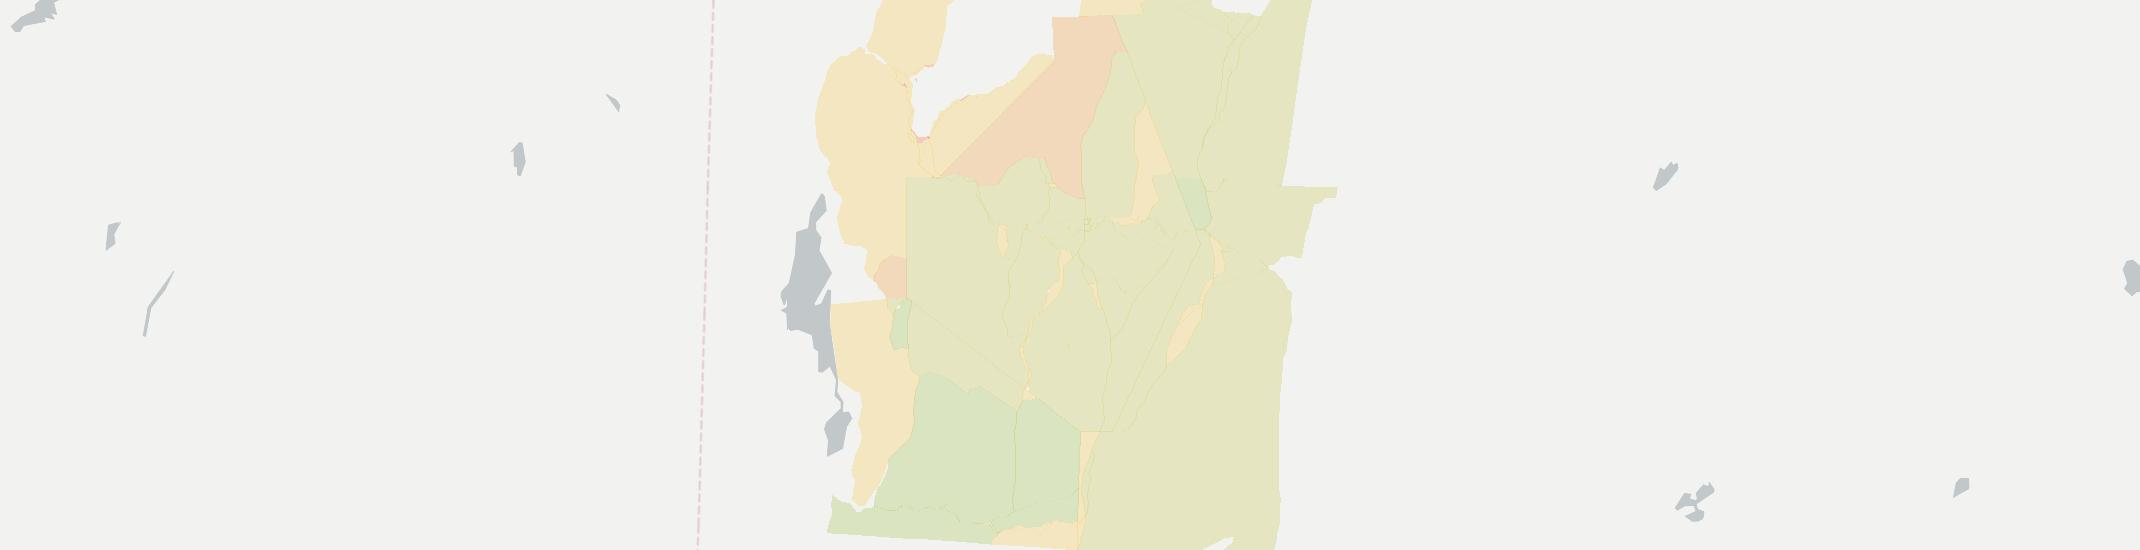 Middletown Springs Internet Competition Map. Click for interactive map.